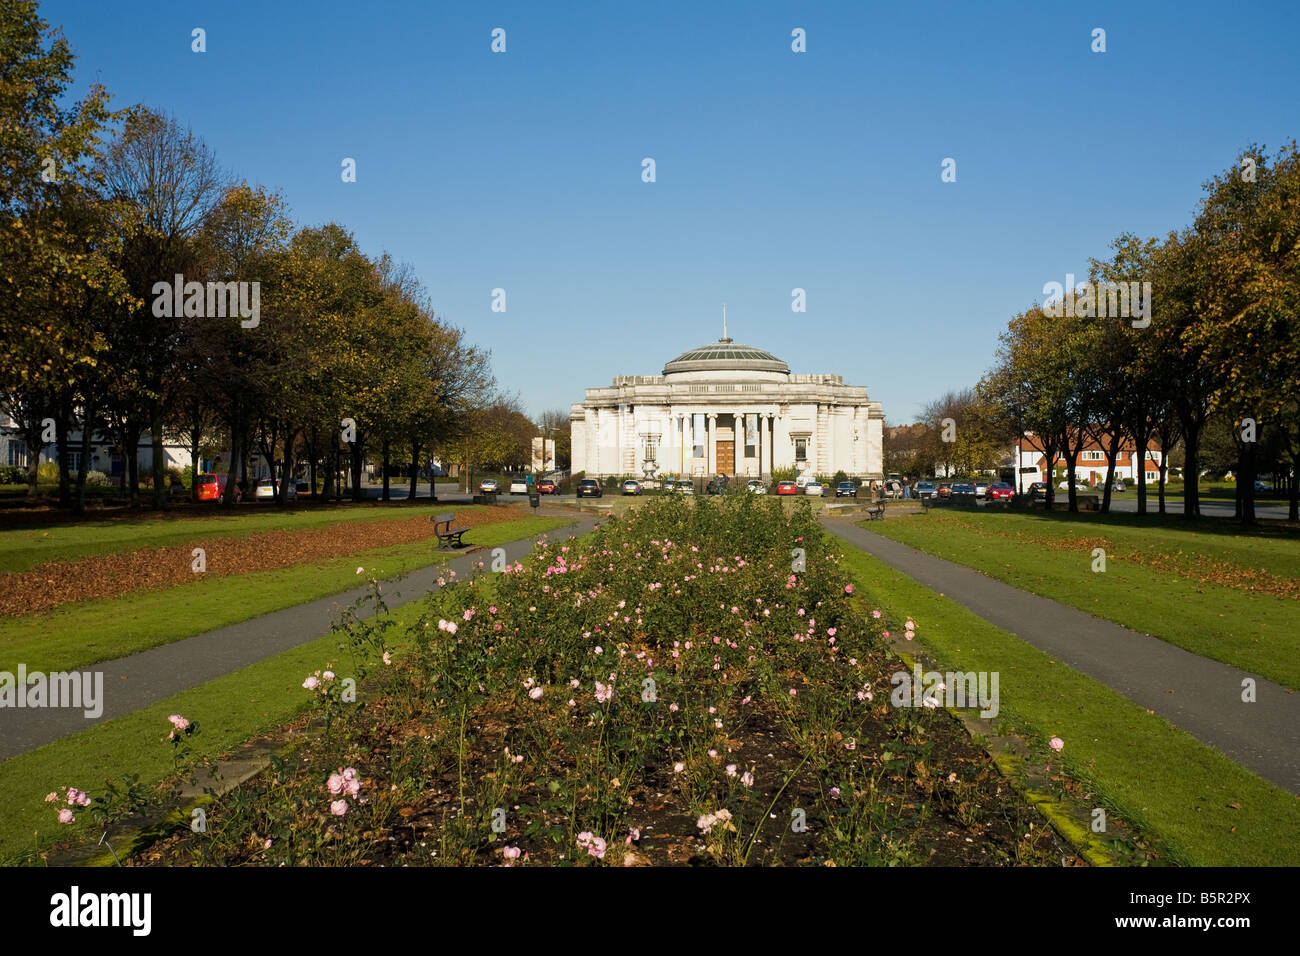 Lady Lever Gallery and gardens in Port Sunlight Model Village Wirral Peninsula Merseyside England UK United Kingdom - Stock Image